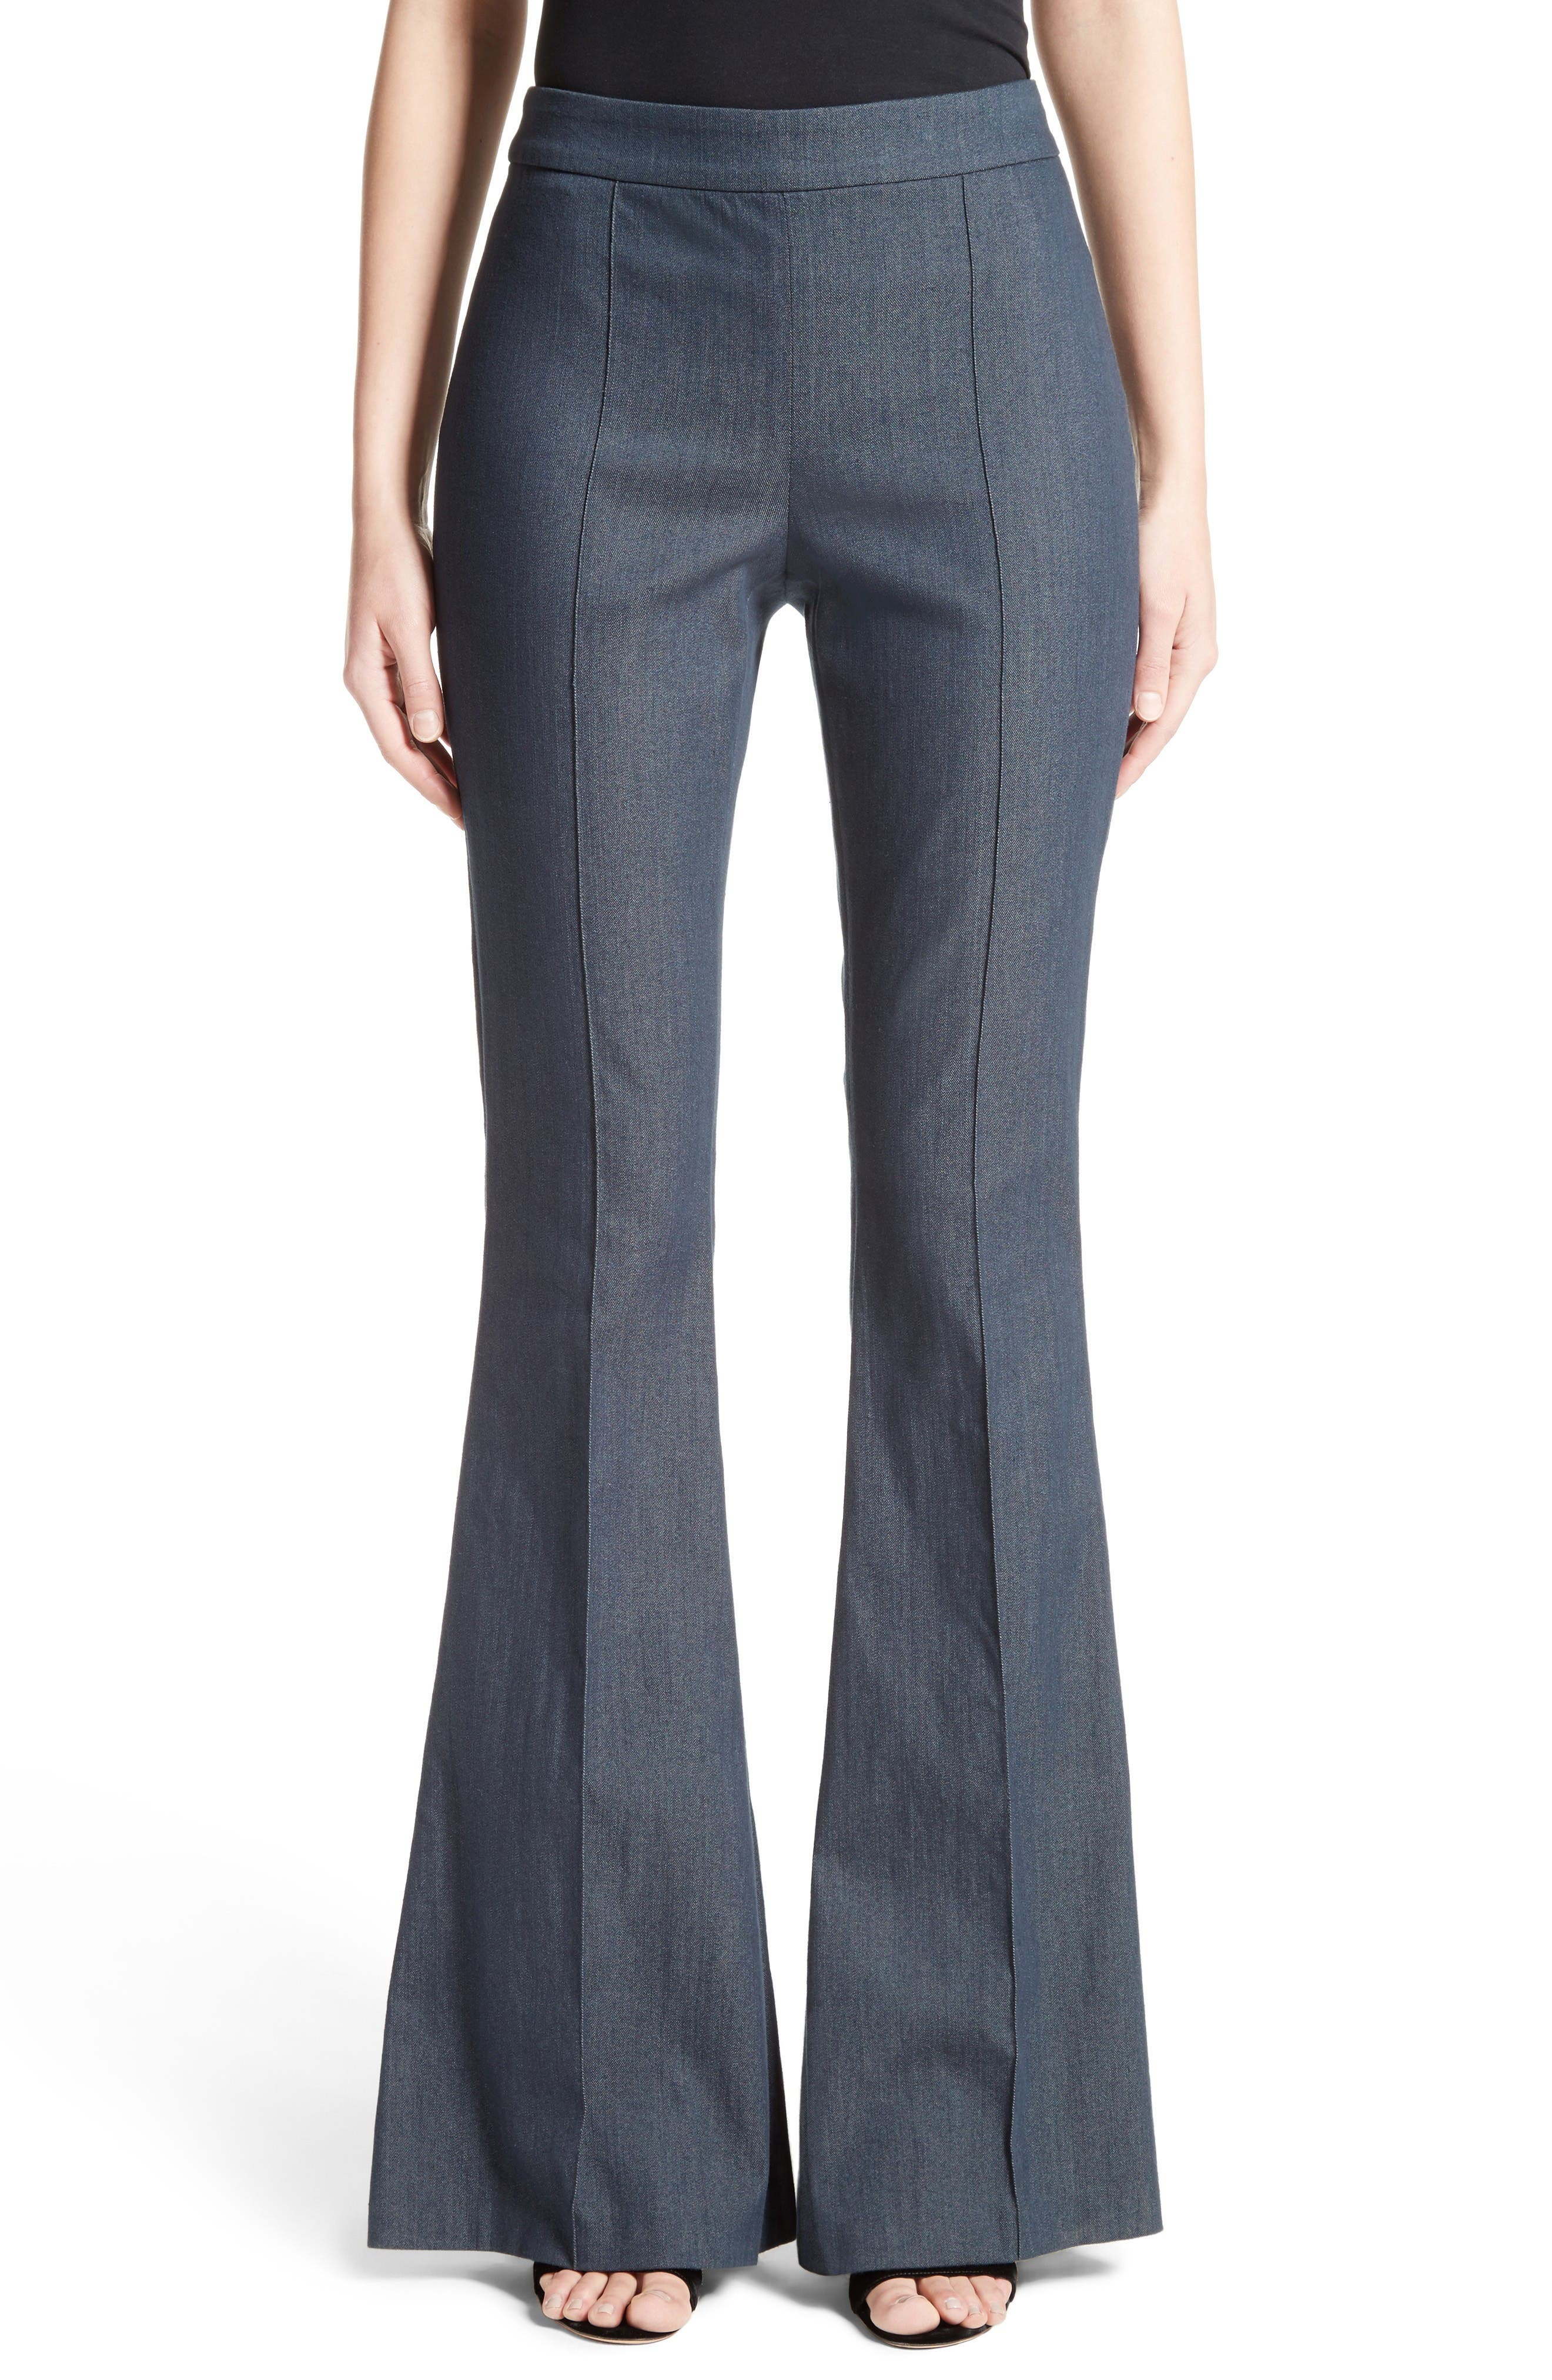 Main Image - St. John Collection Stretch Denim Flare Pants